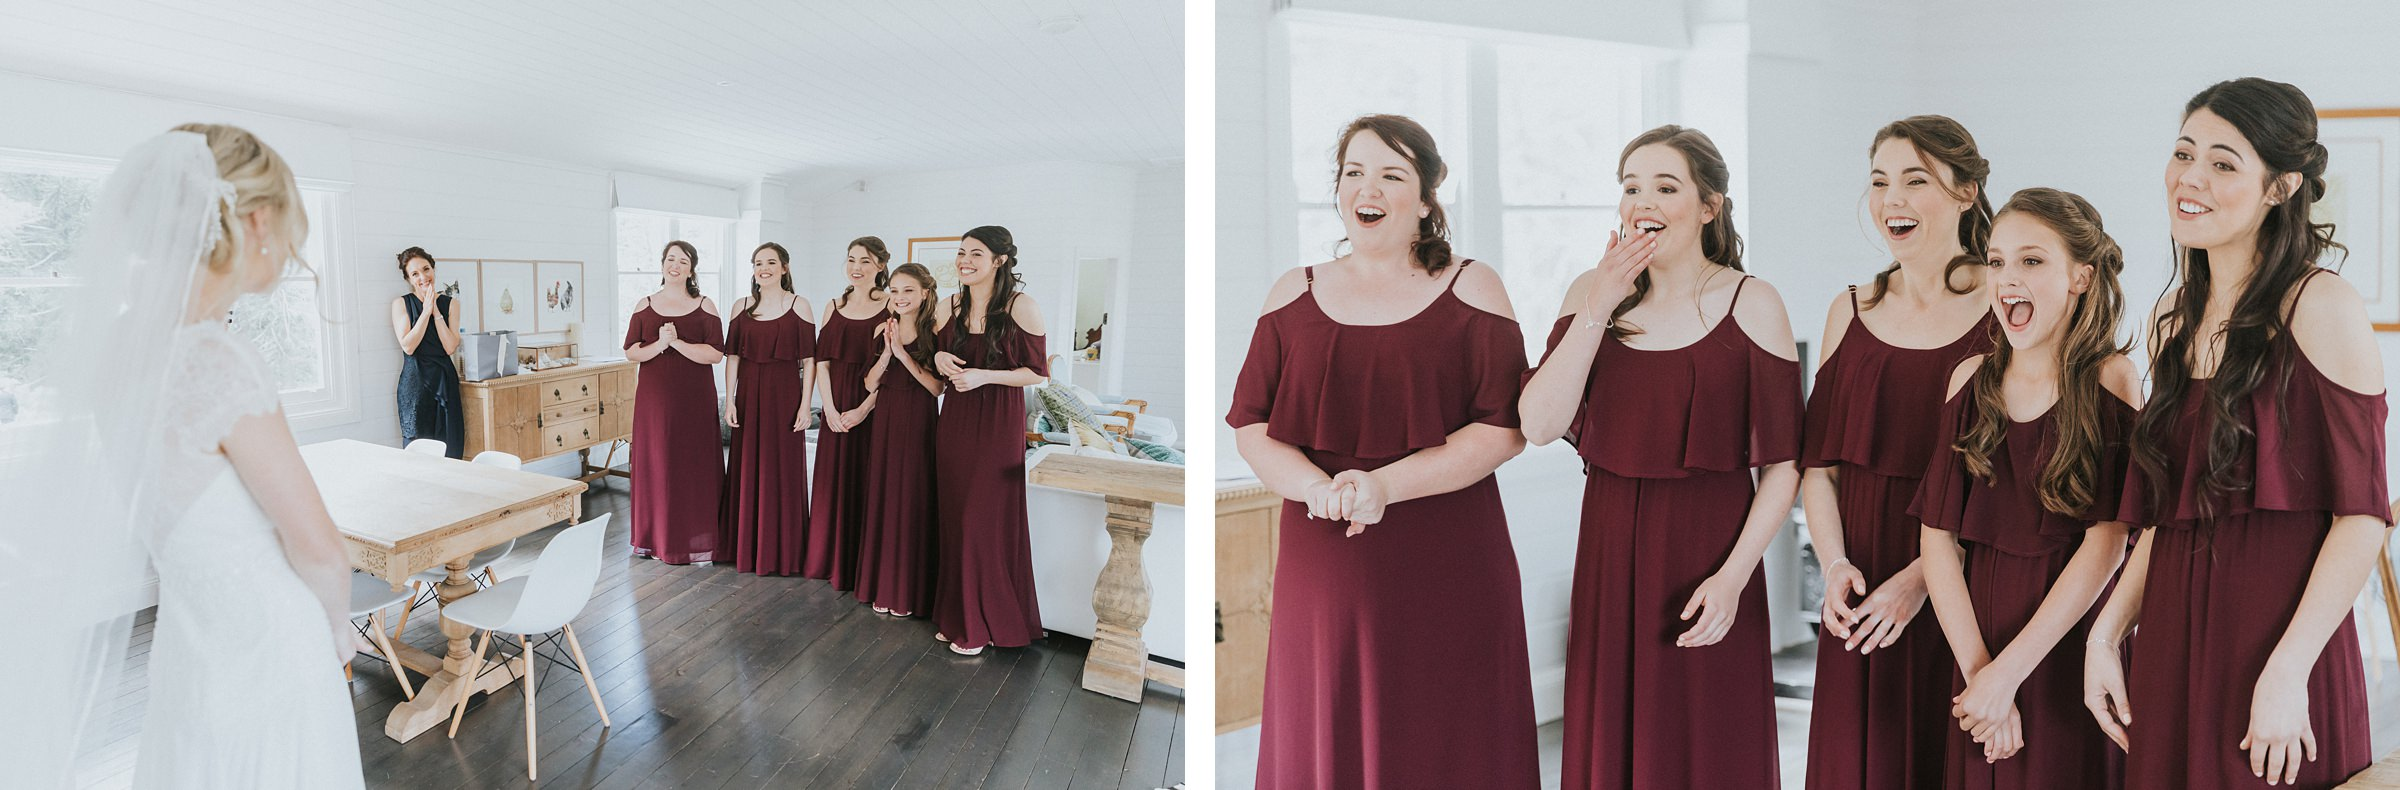 bridesmaids see bride for first time photojournalism